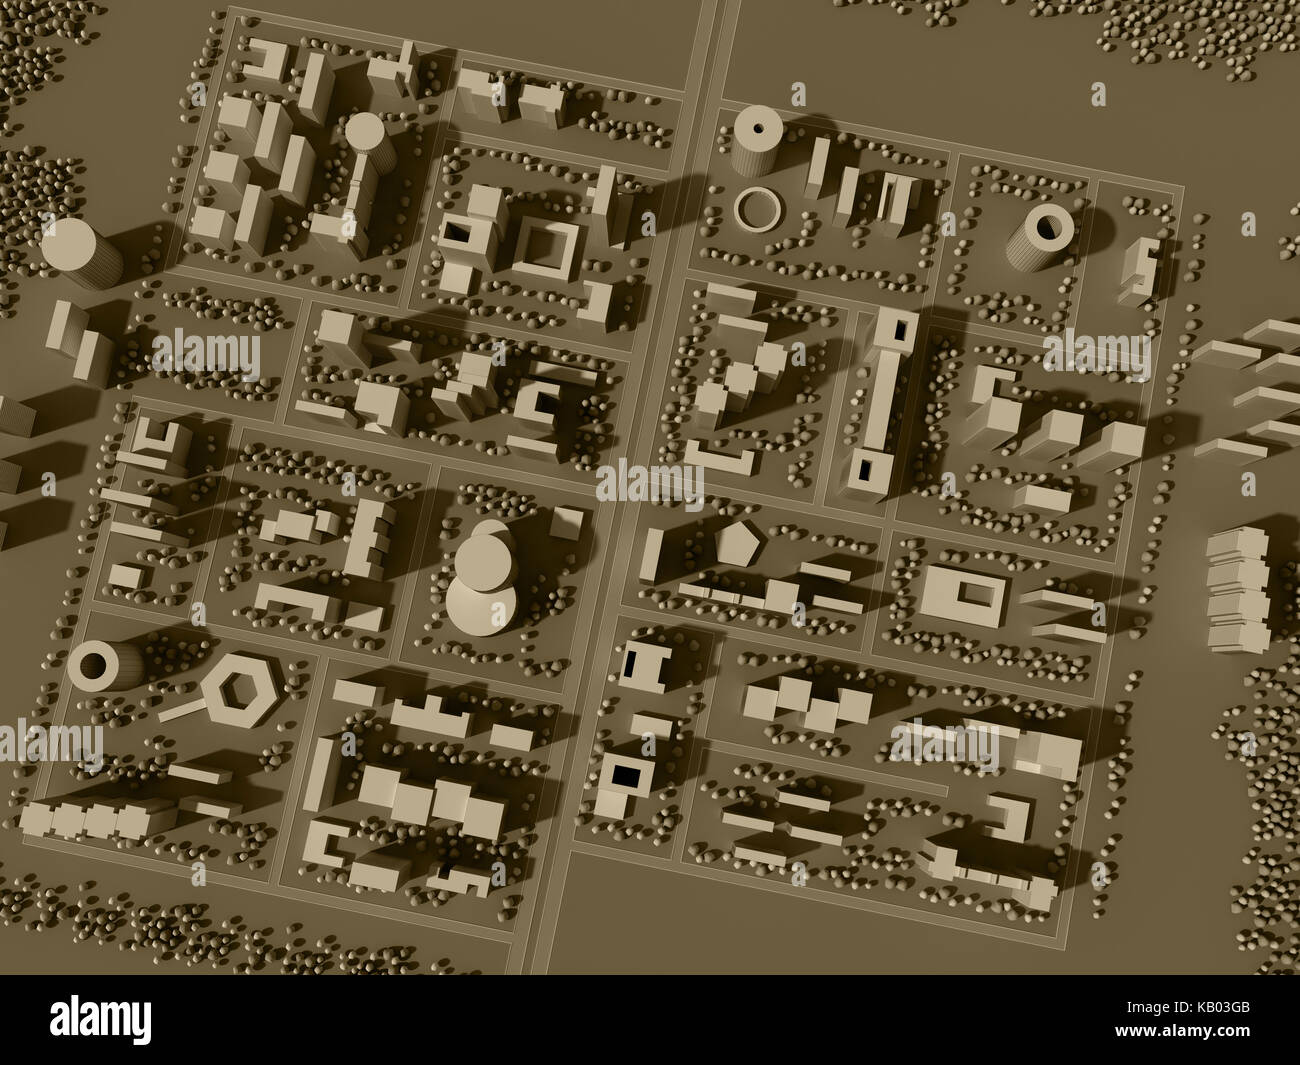 3d rendering map of city in sepia tones - Stock Image